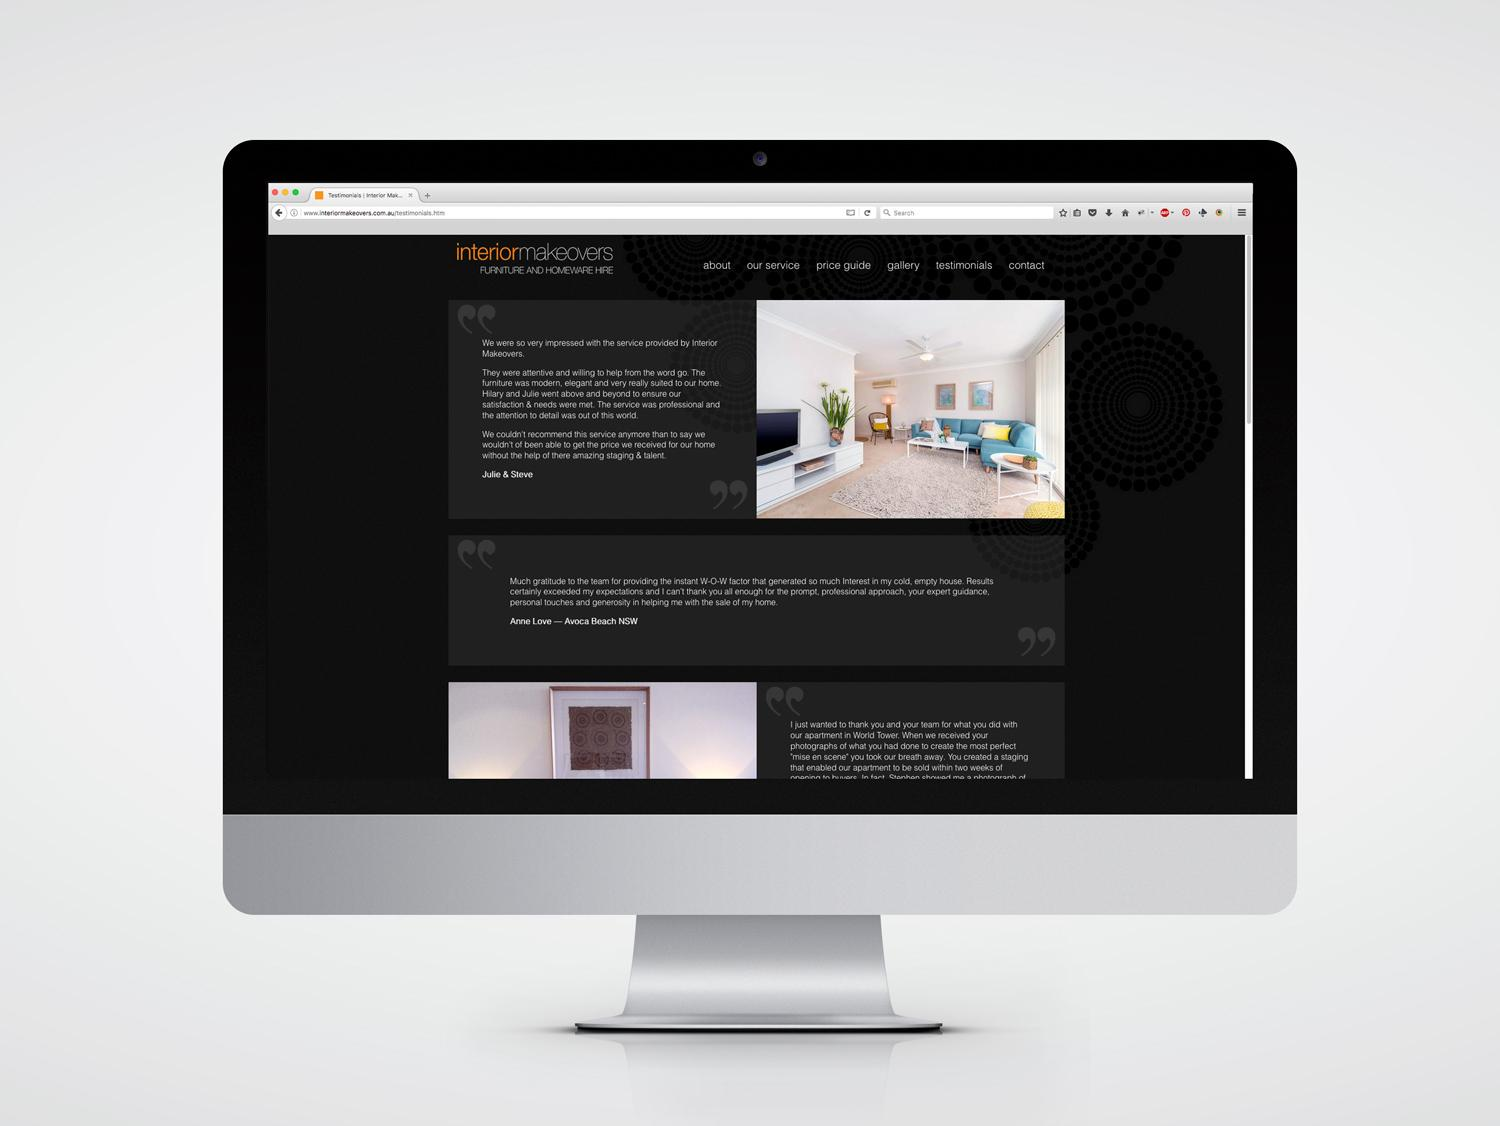 Interior Makeovers website design testimonial page